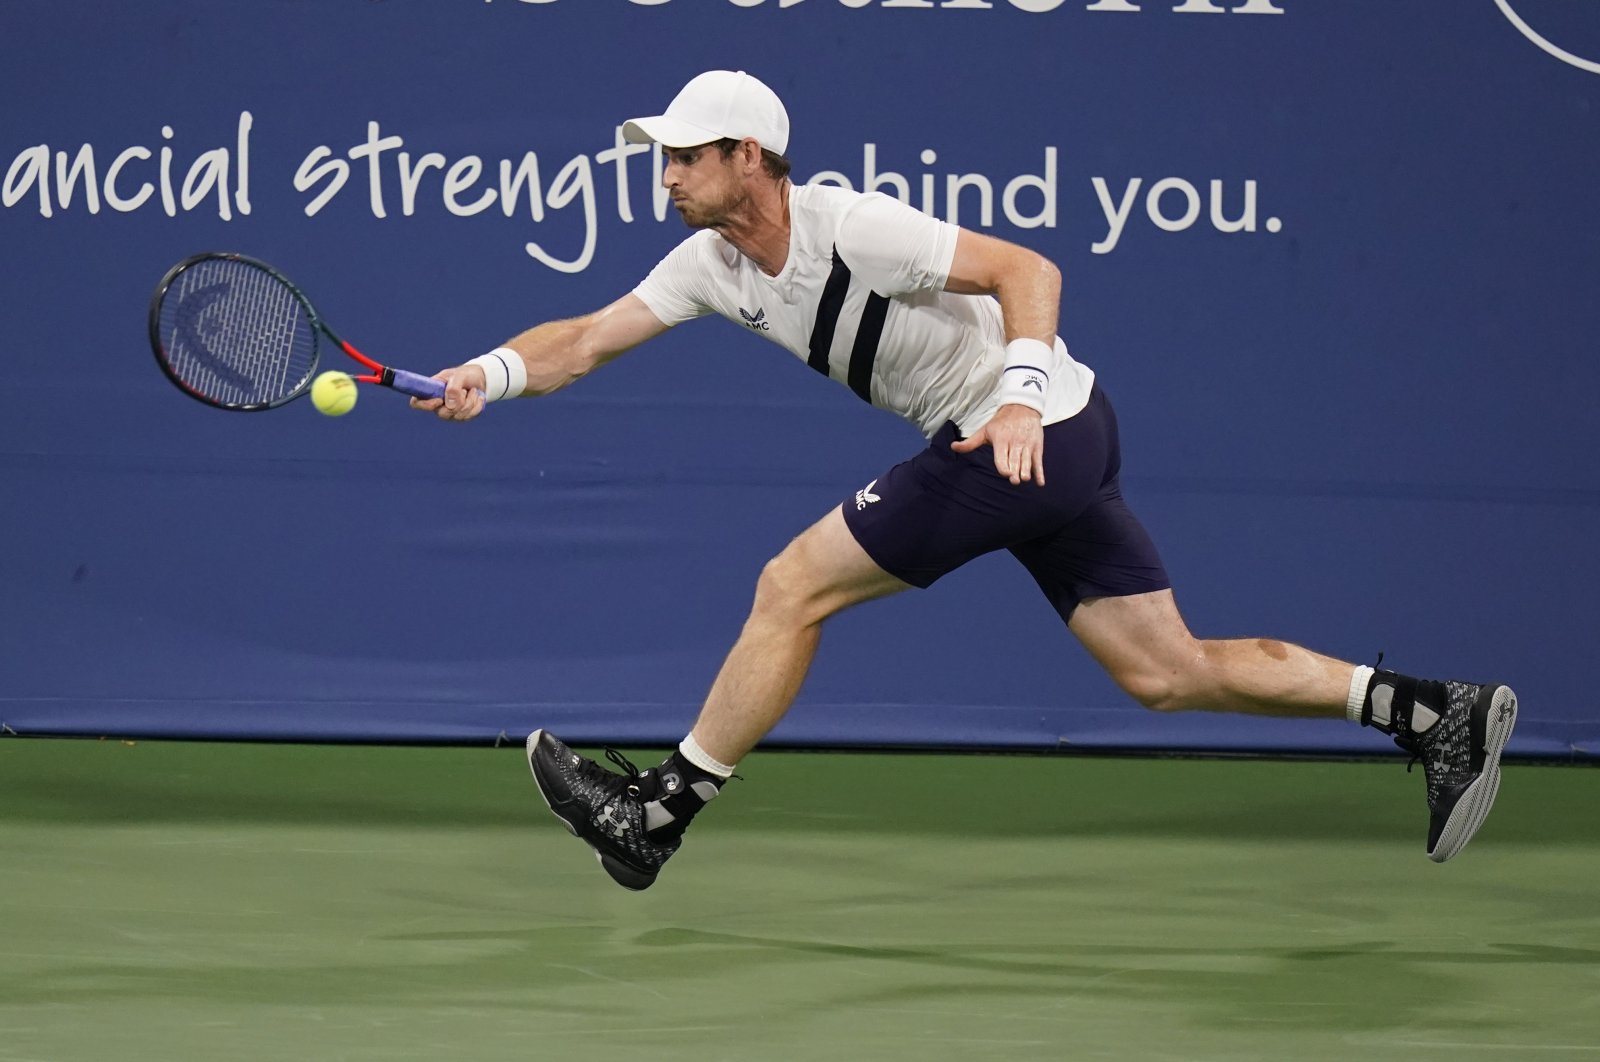 Andy Murray stretches for a ball from Milos Raonic during the third round at the Western & Southern Open tennis tournament in New York, U.S., Aug. 25, 2020. (AP Photo)